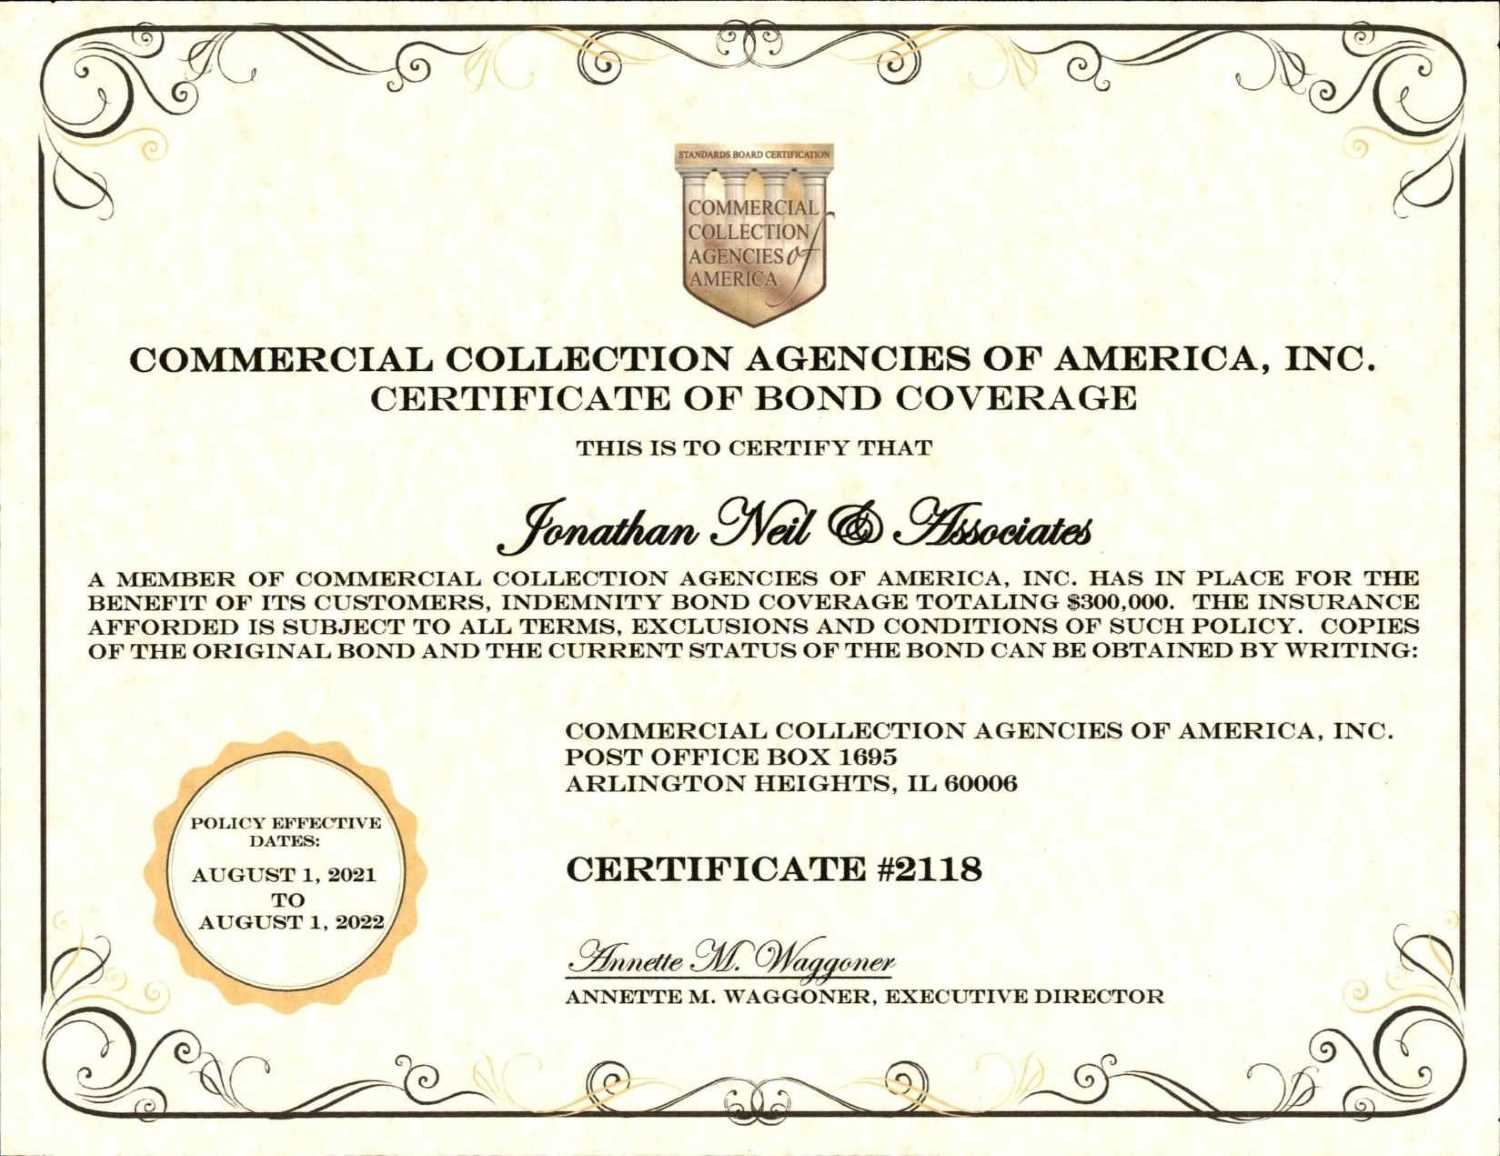 Commercial Collection Agencies of America, Inc., Certification of Accreditation and Compliance